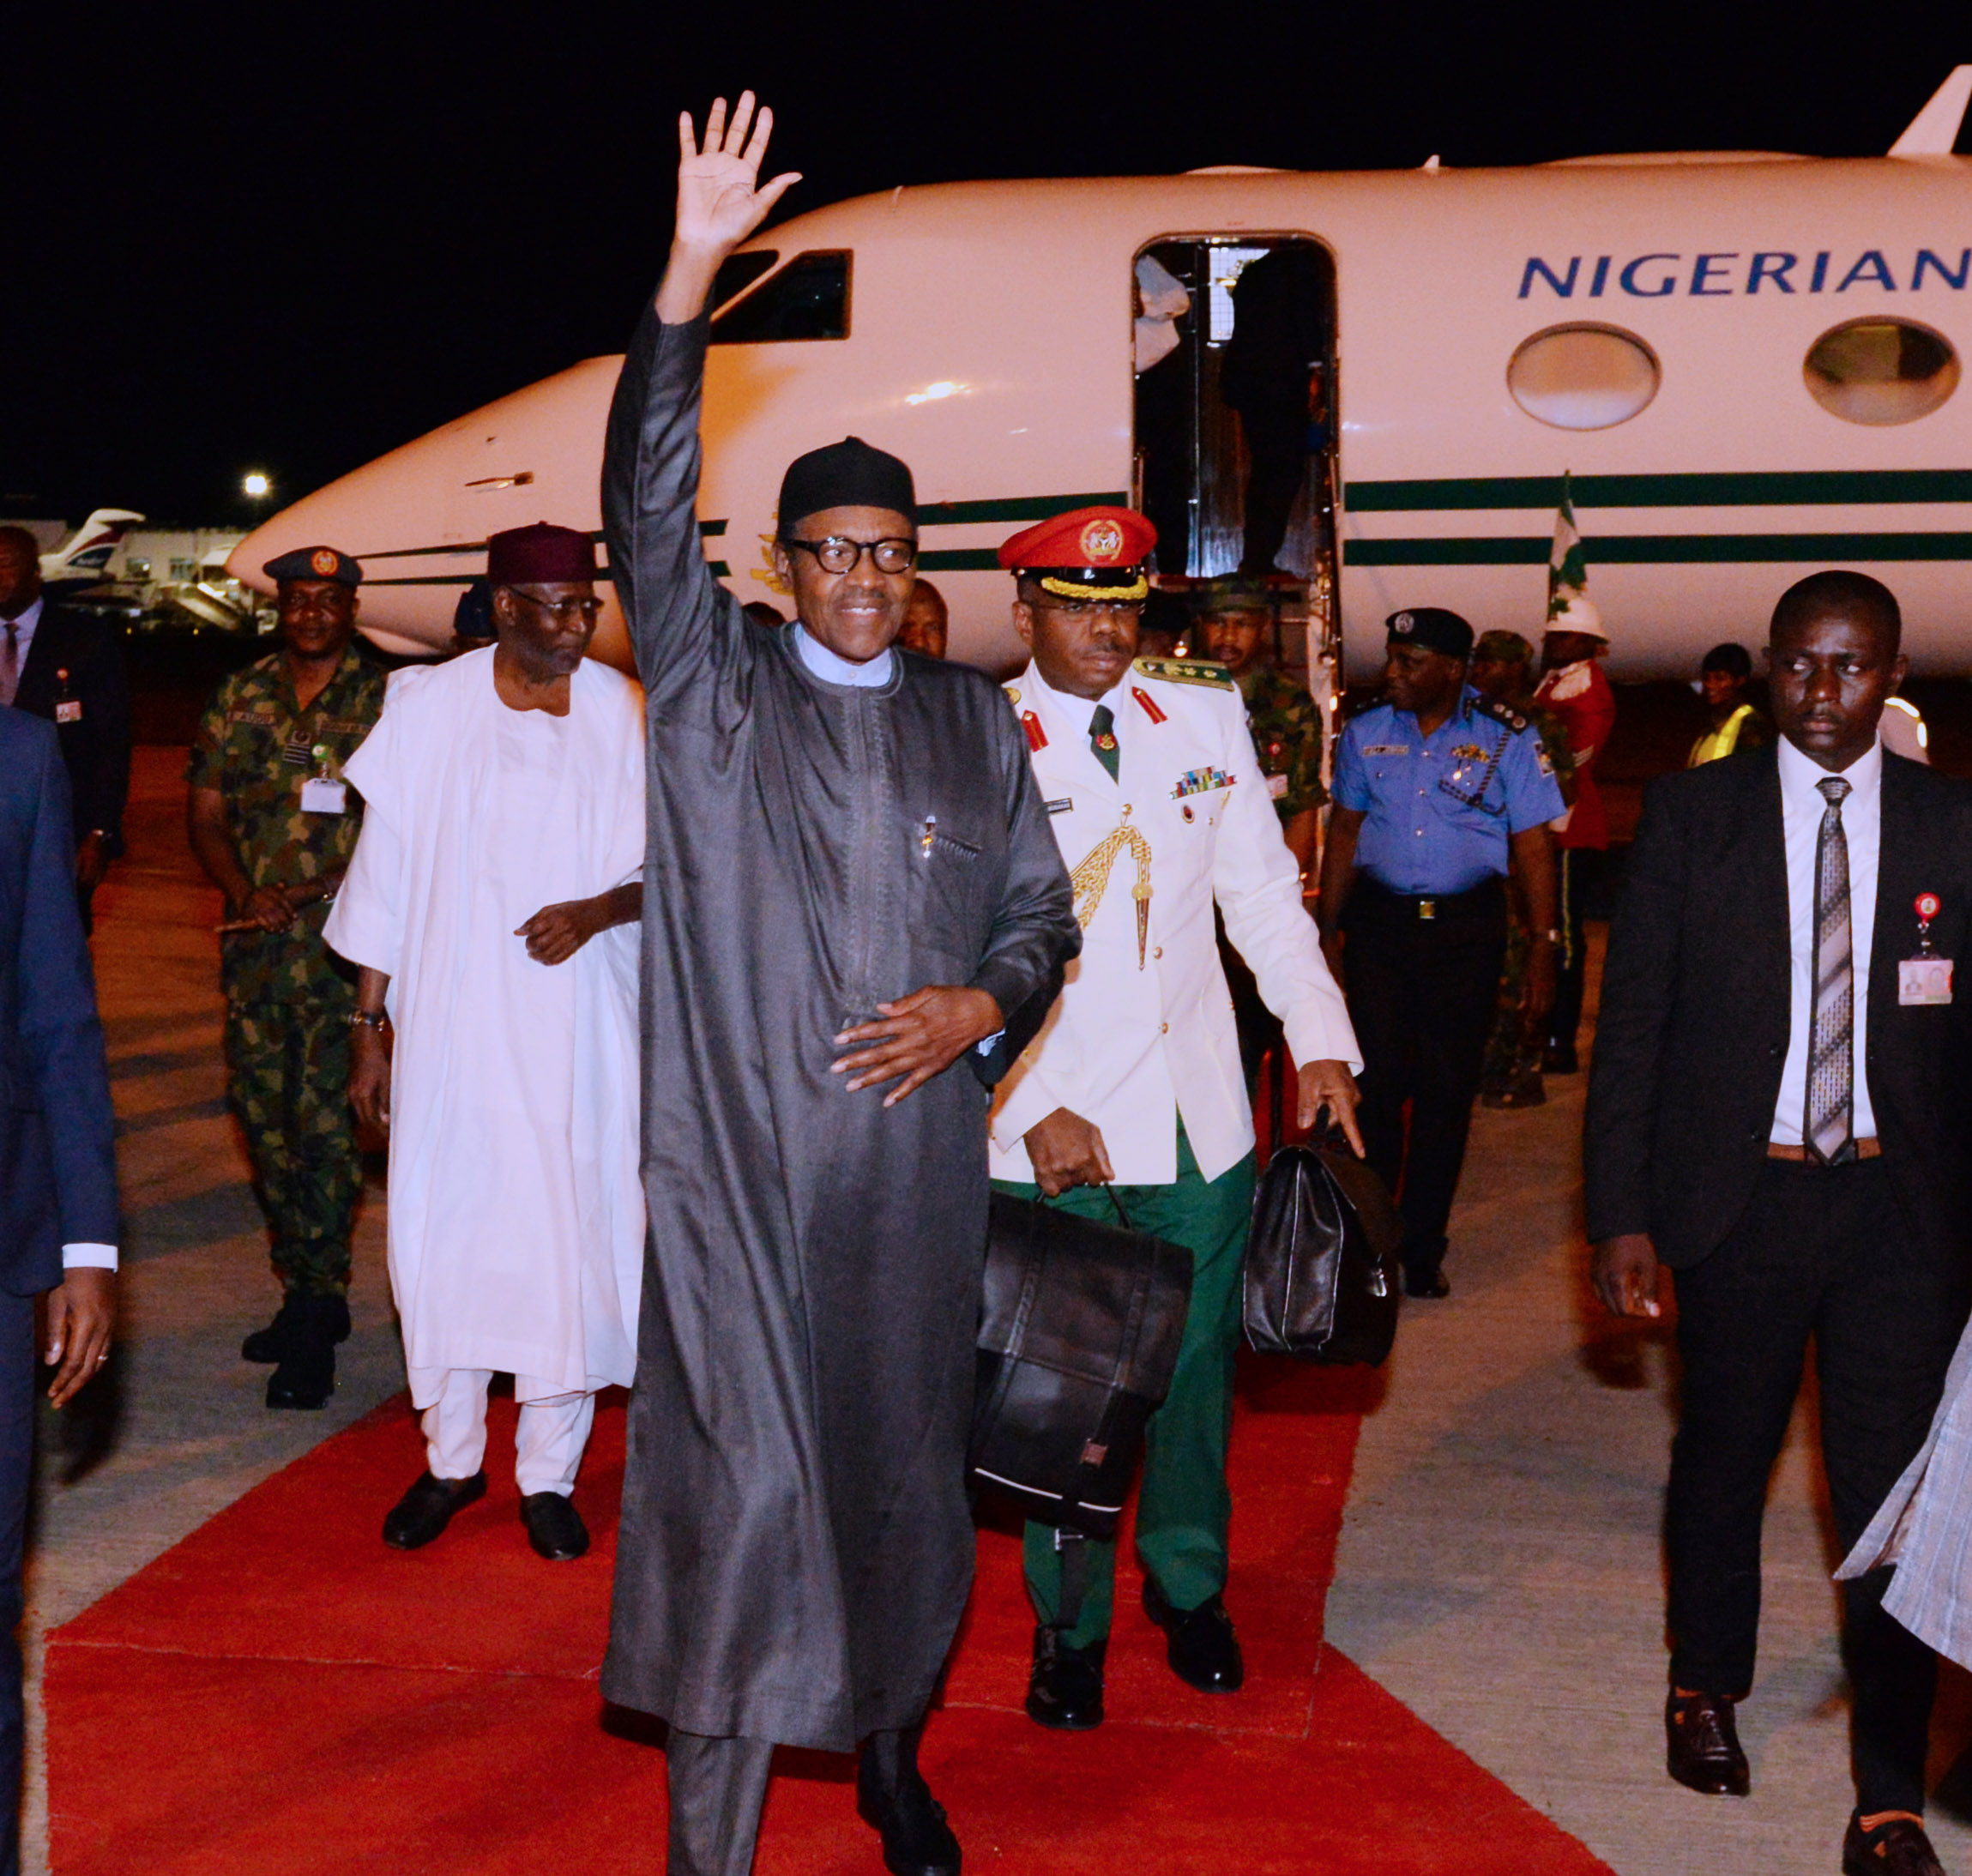 PRESIDENT BUHARI RETURNS 5A&B. President Muhammadu Buhari returns to Abuja after a successful outing with the President of the United State Donald Trump in Wahington DC. PHOTO; SUNDAY AGHAEZE. MAY 2018